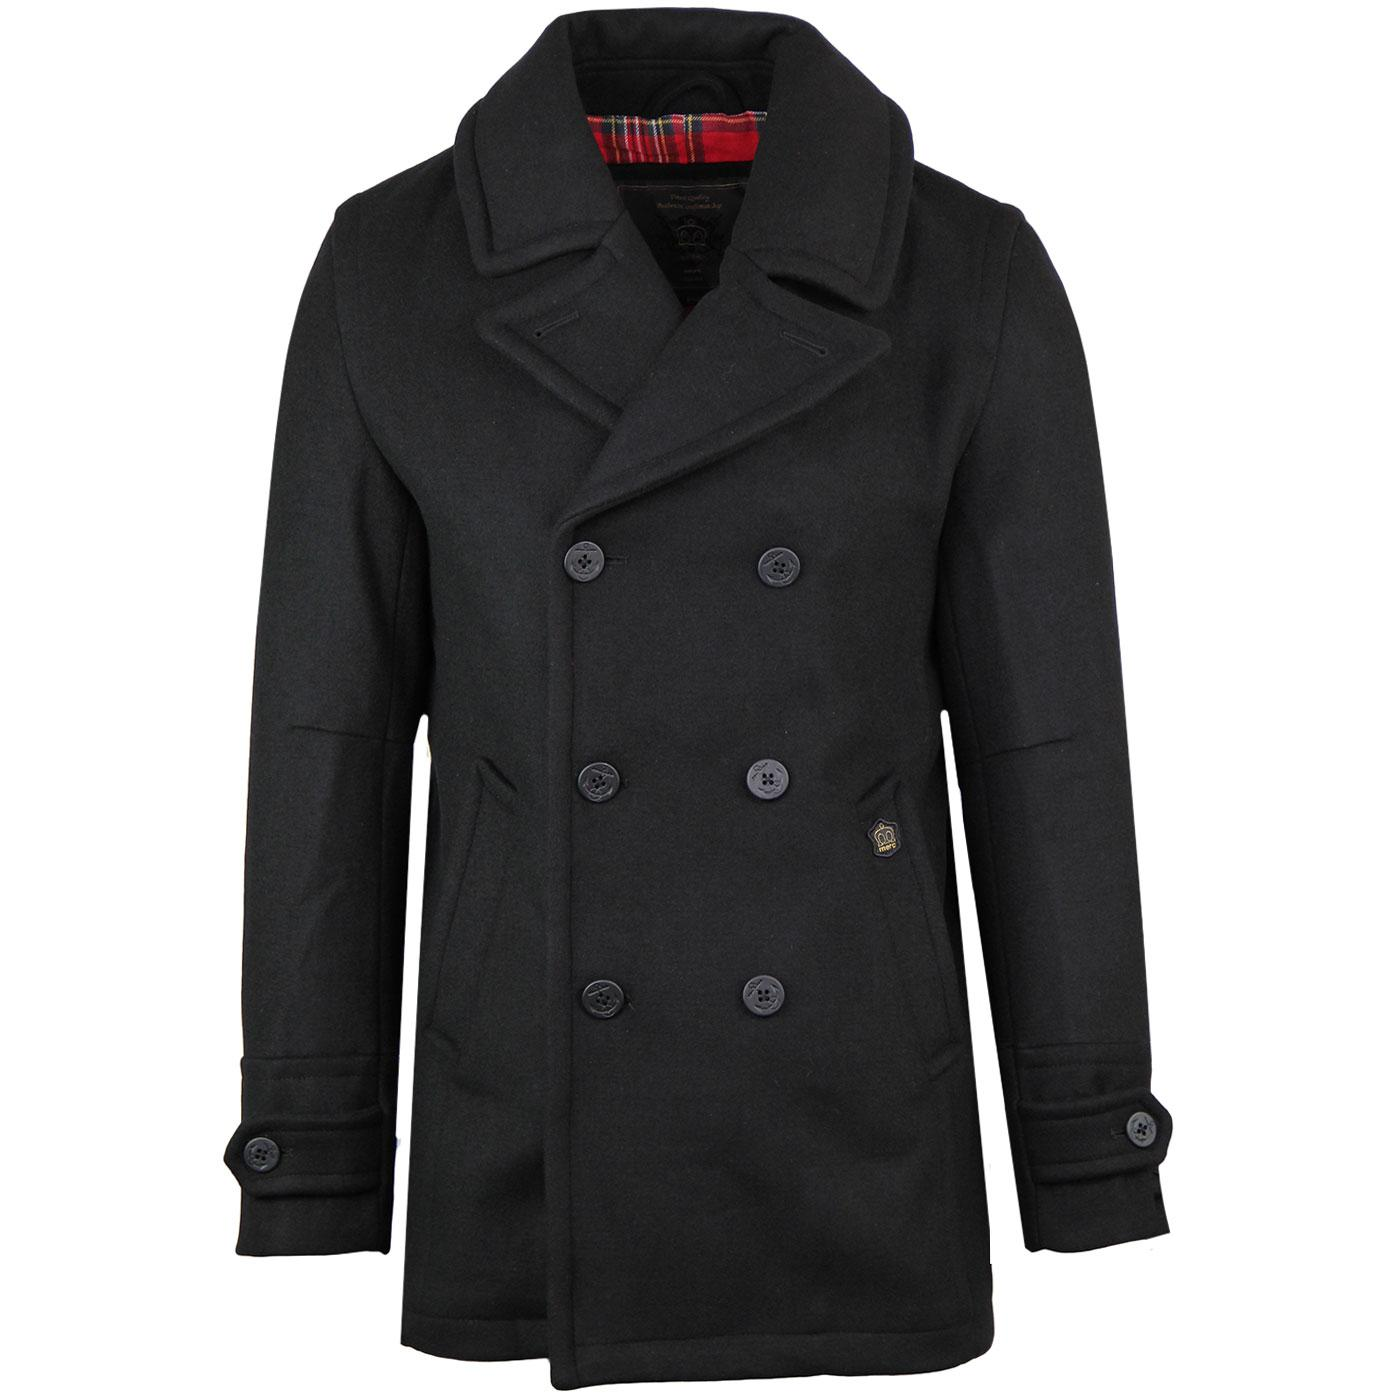 Doyle MERC Mod Tartan Lined Melton Pea Coat BLACK